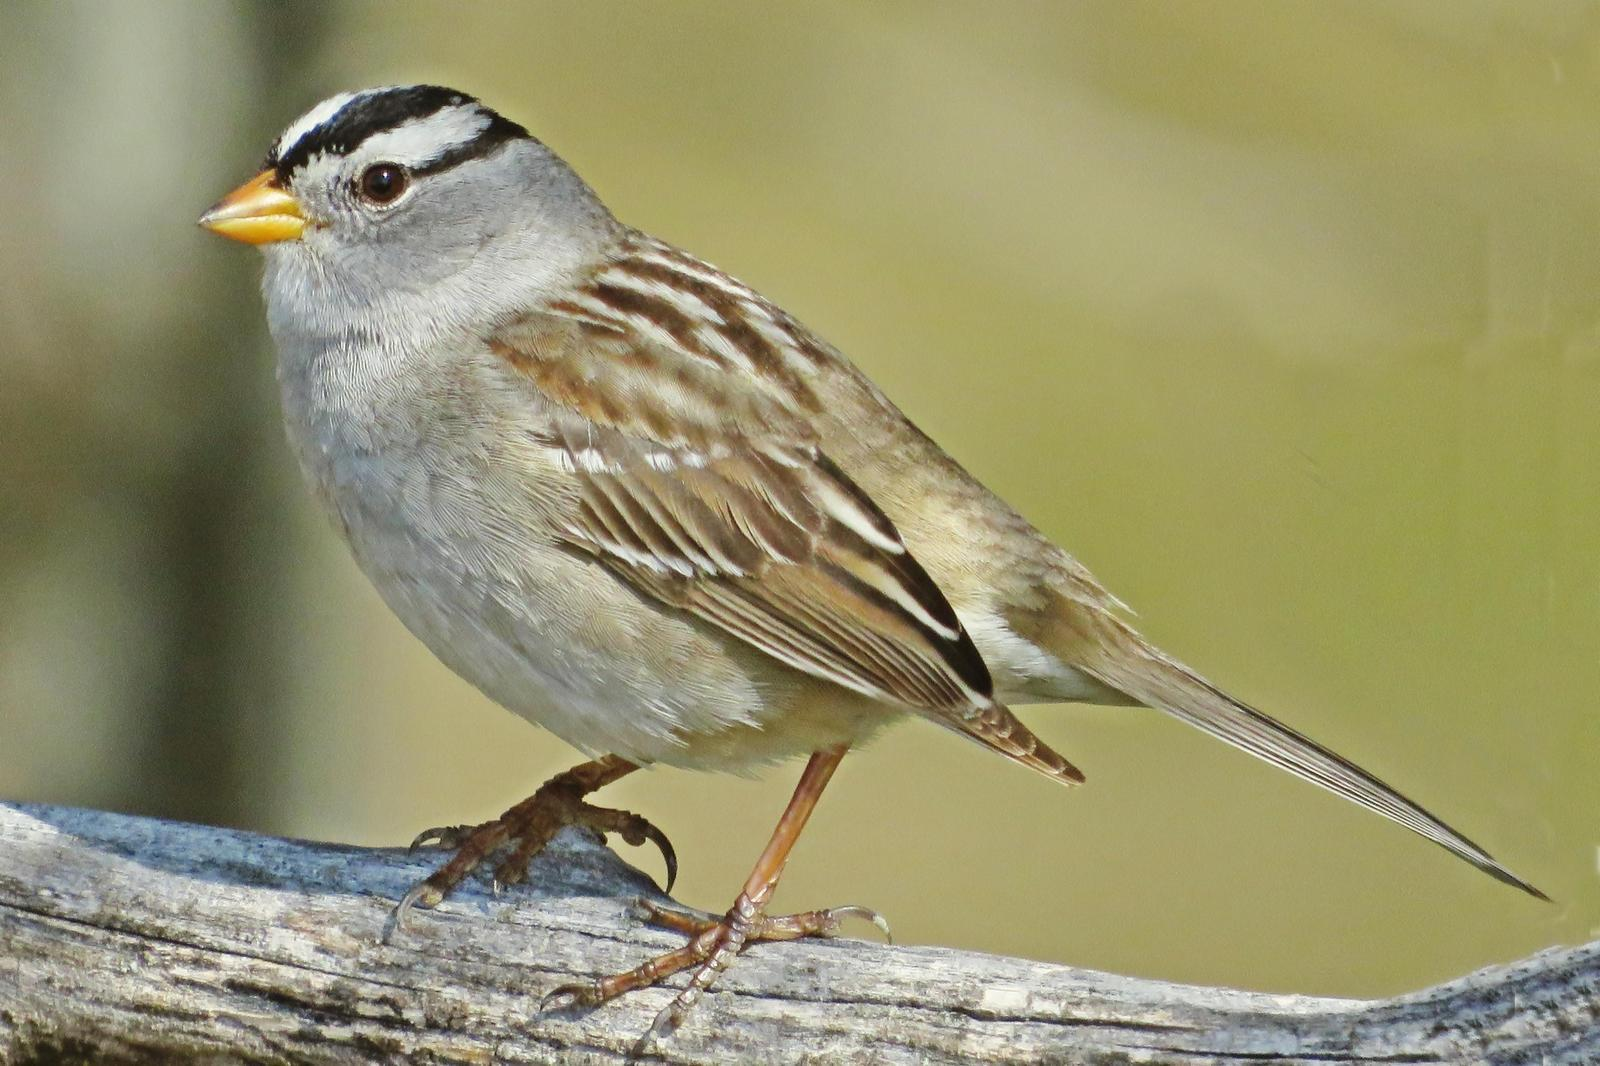 White-crowned Sparrow Photo by Bob Neugebauer